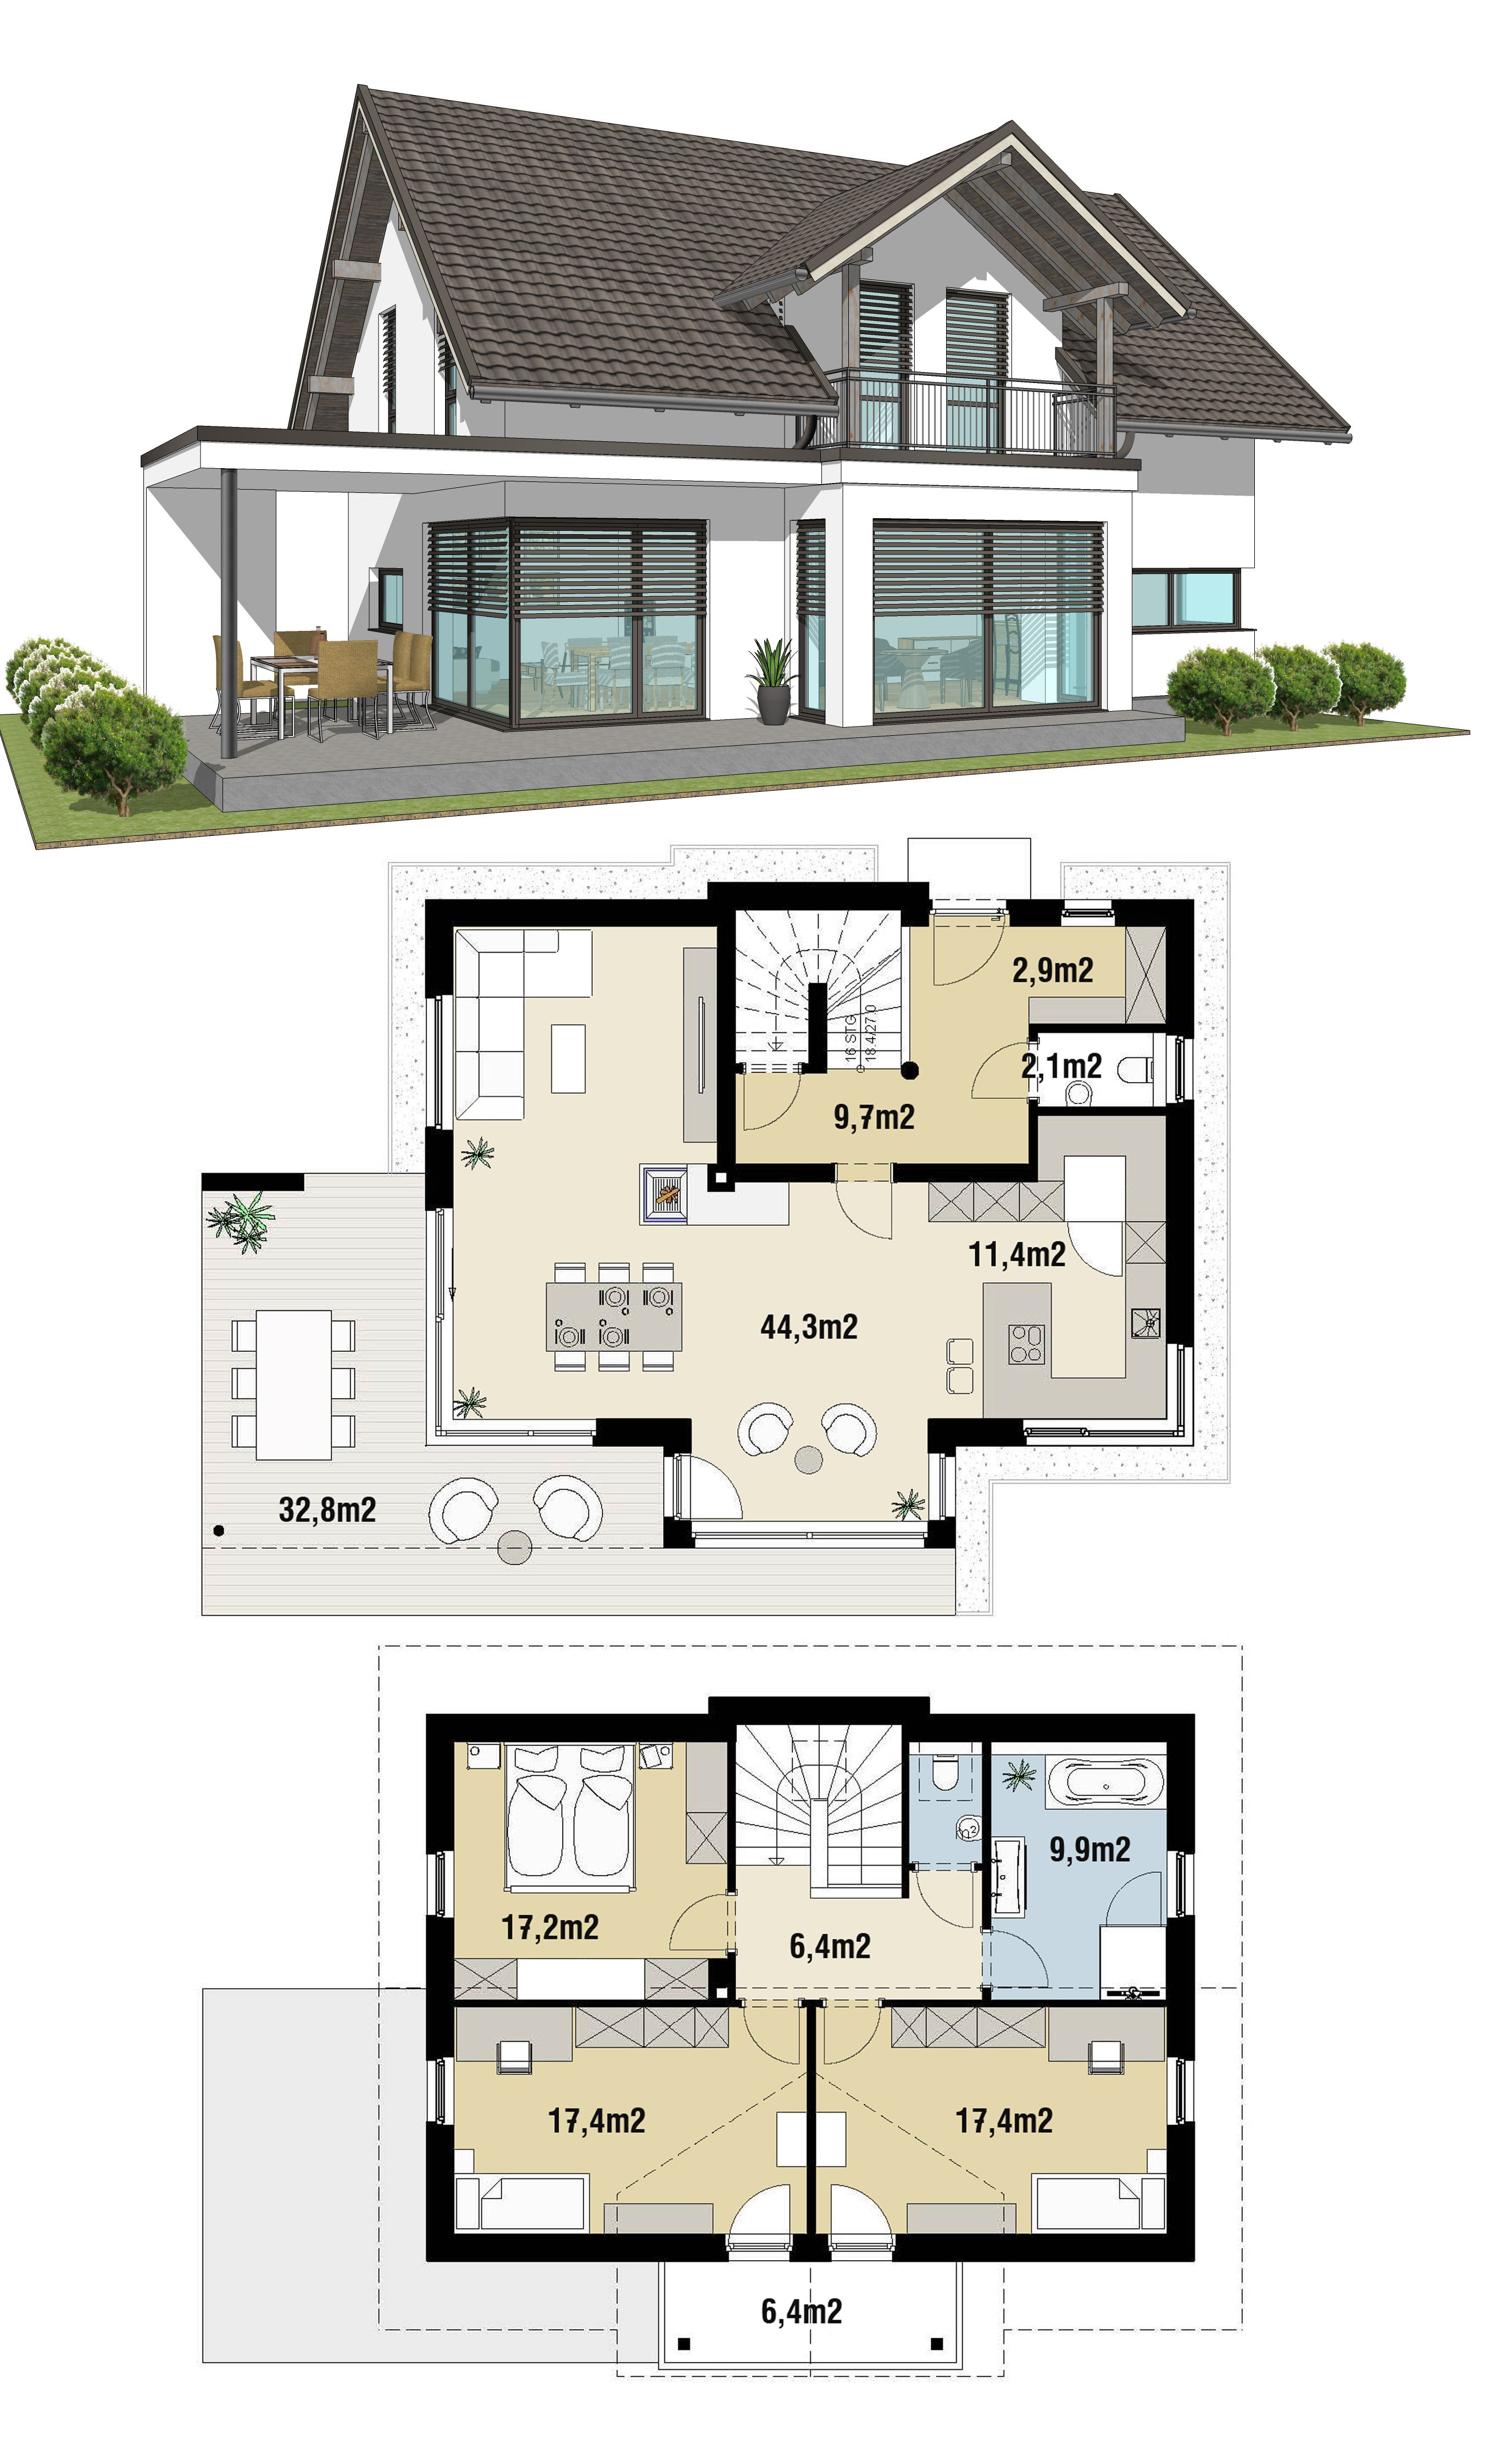 Small House Design Ideas Plan 88m2 3 Beds Small House Small House Design House Designs Exterior